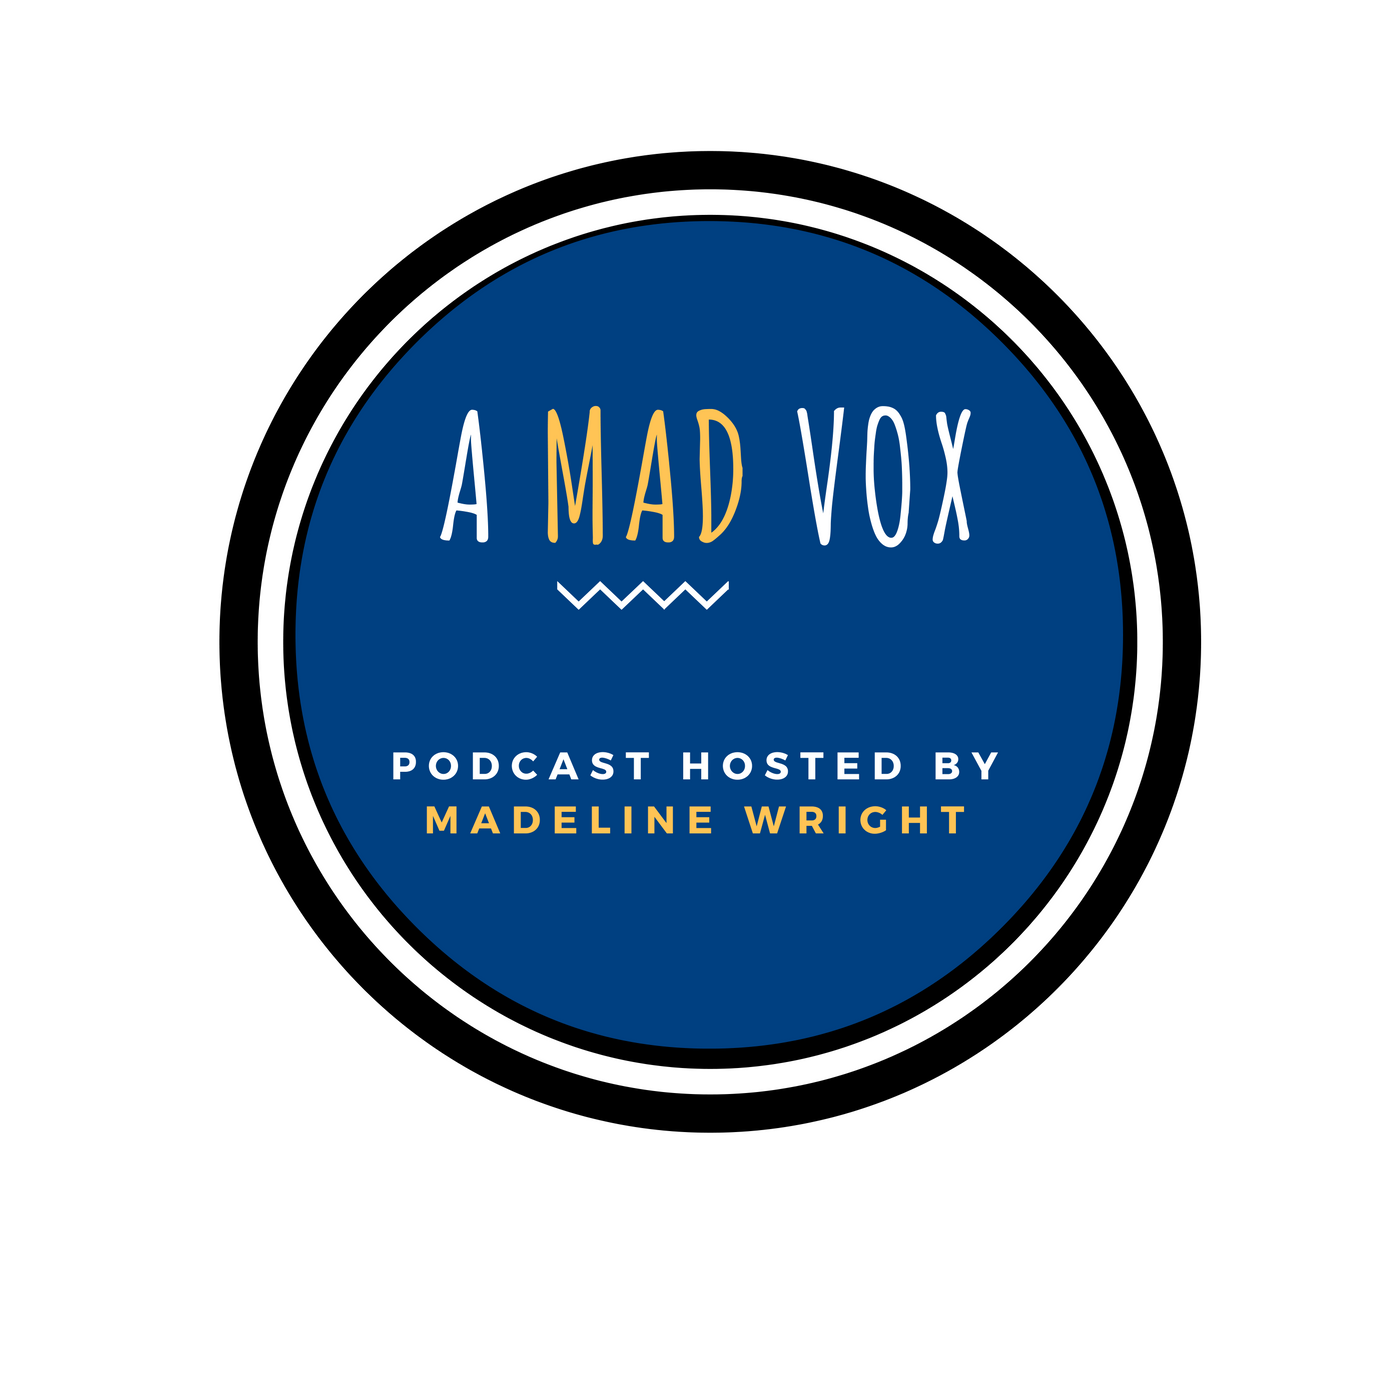 A Mad Vox Podcast logo